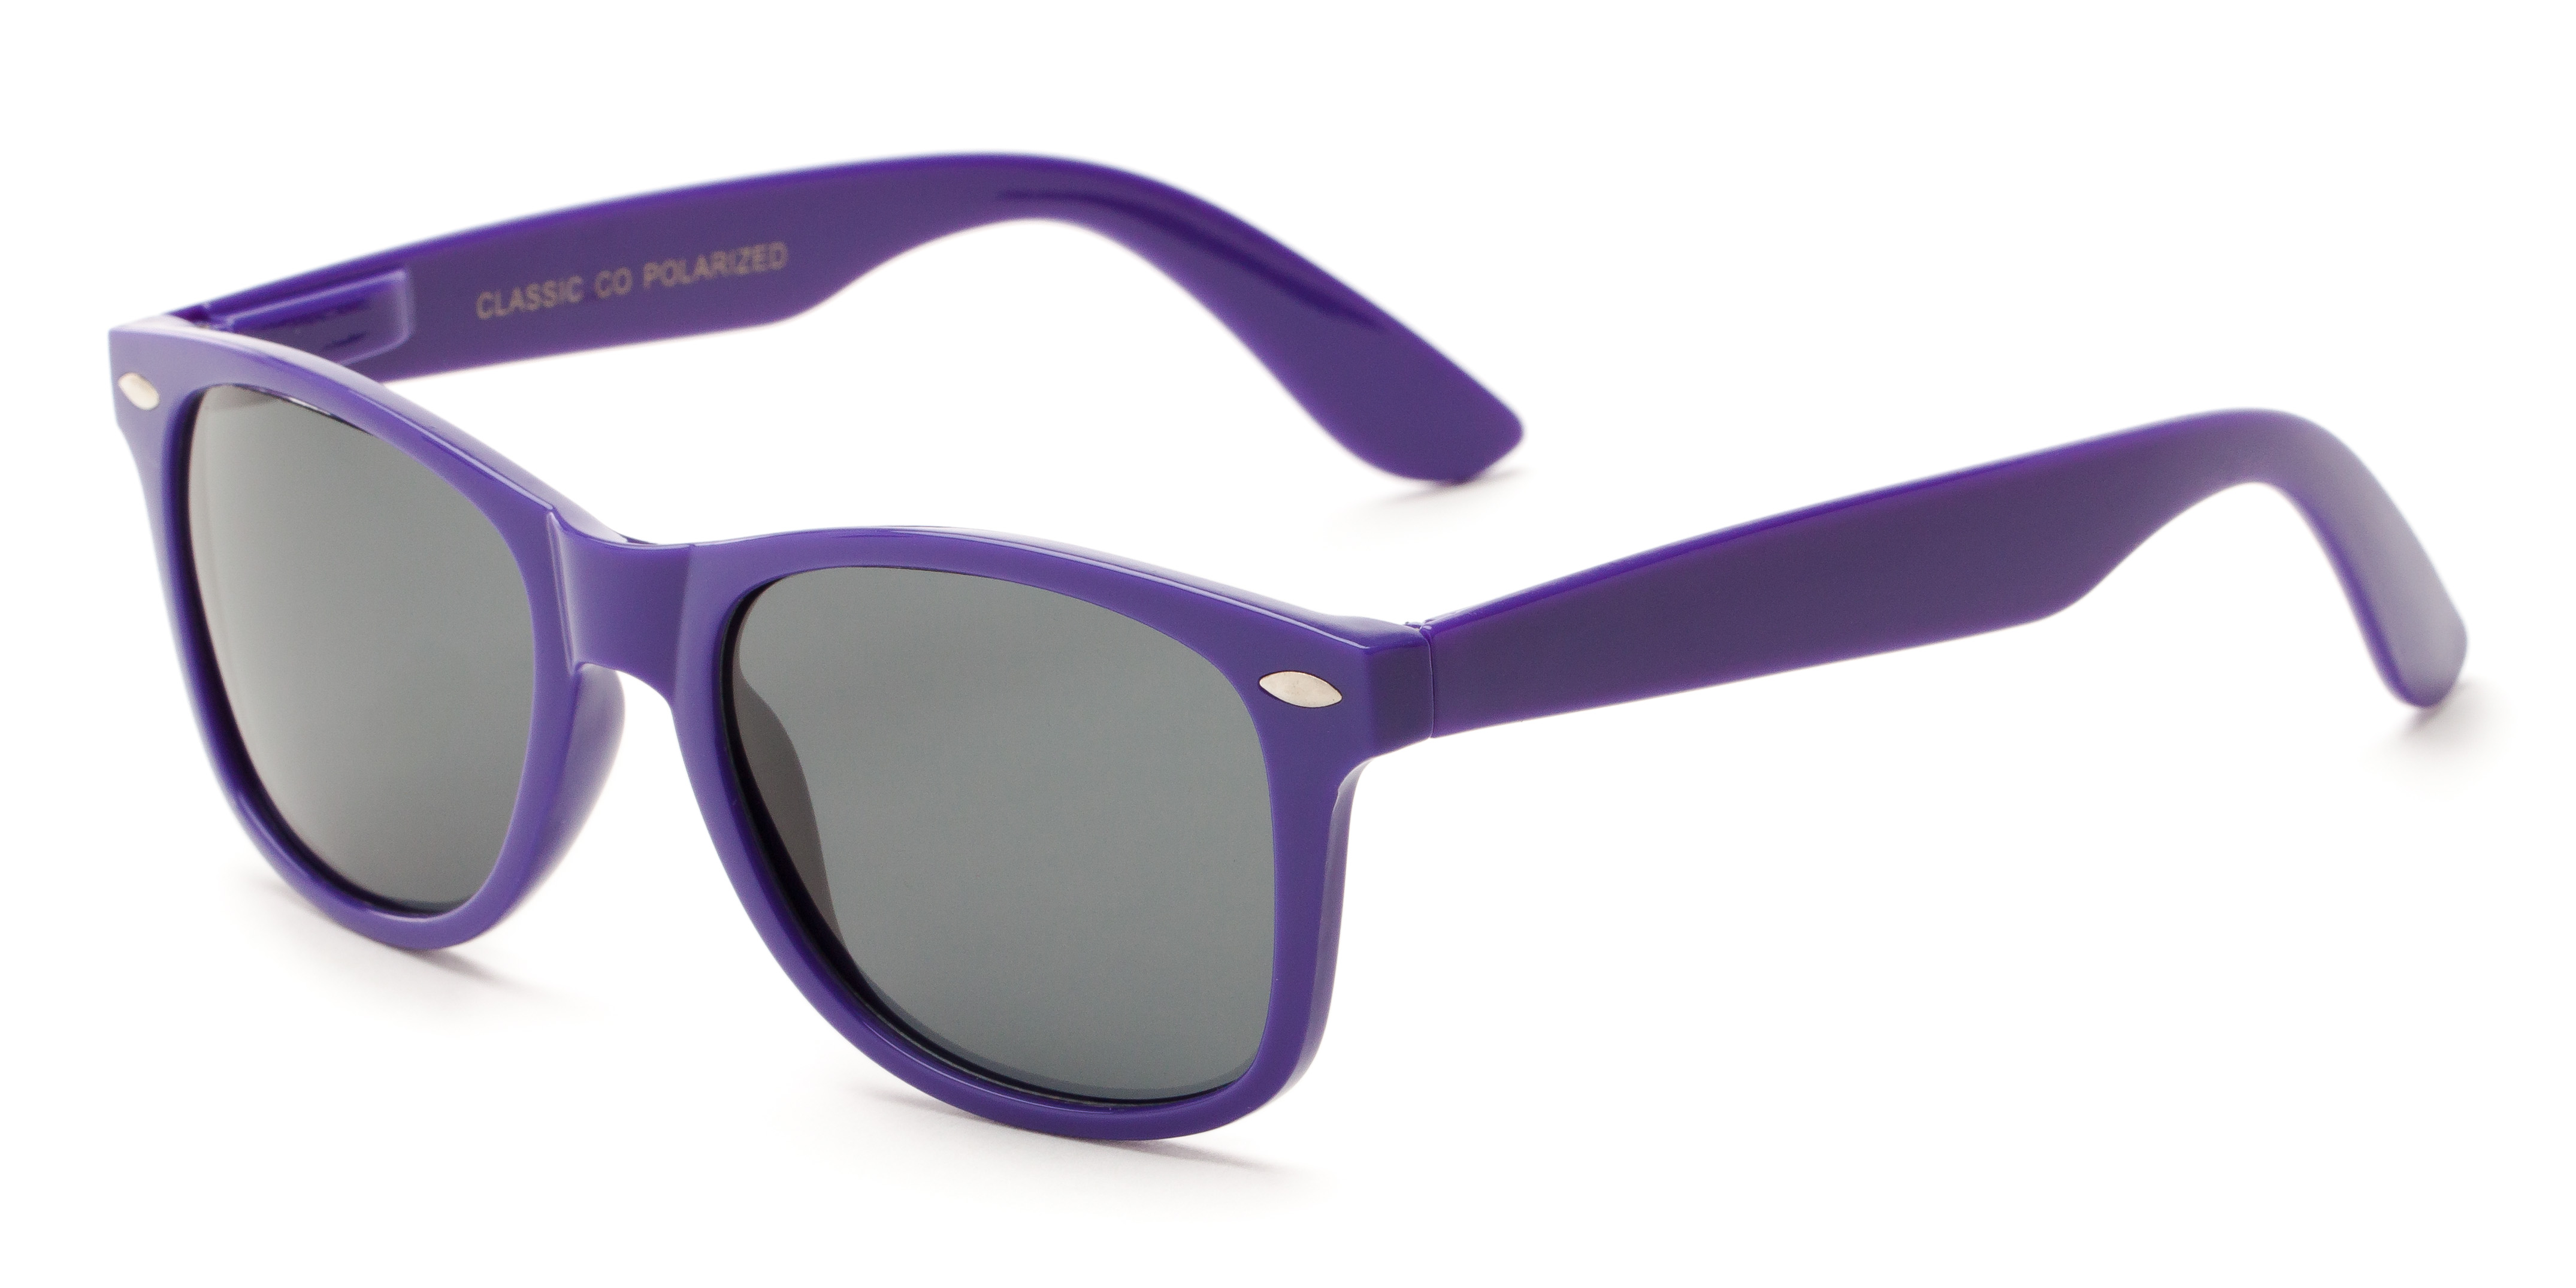 a961ec5919 Ray-Ban - Ray-Ban Unisex RB3016 Classic Clubmaster Sunglasses